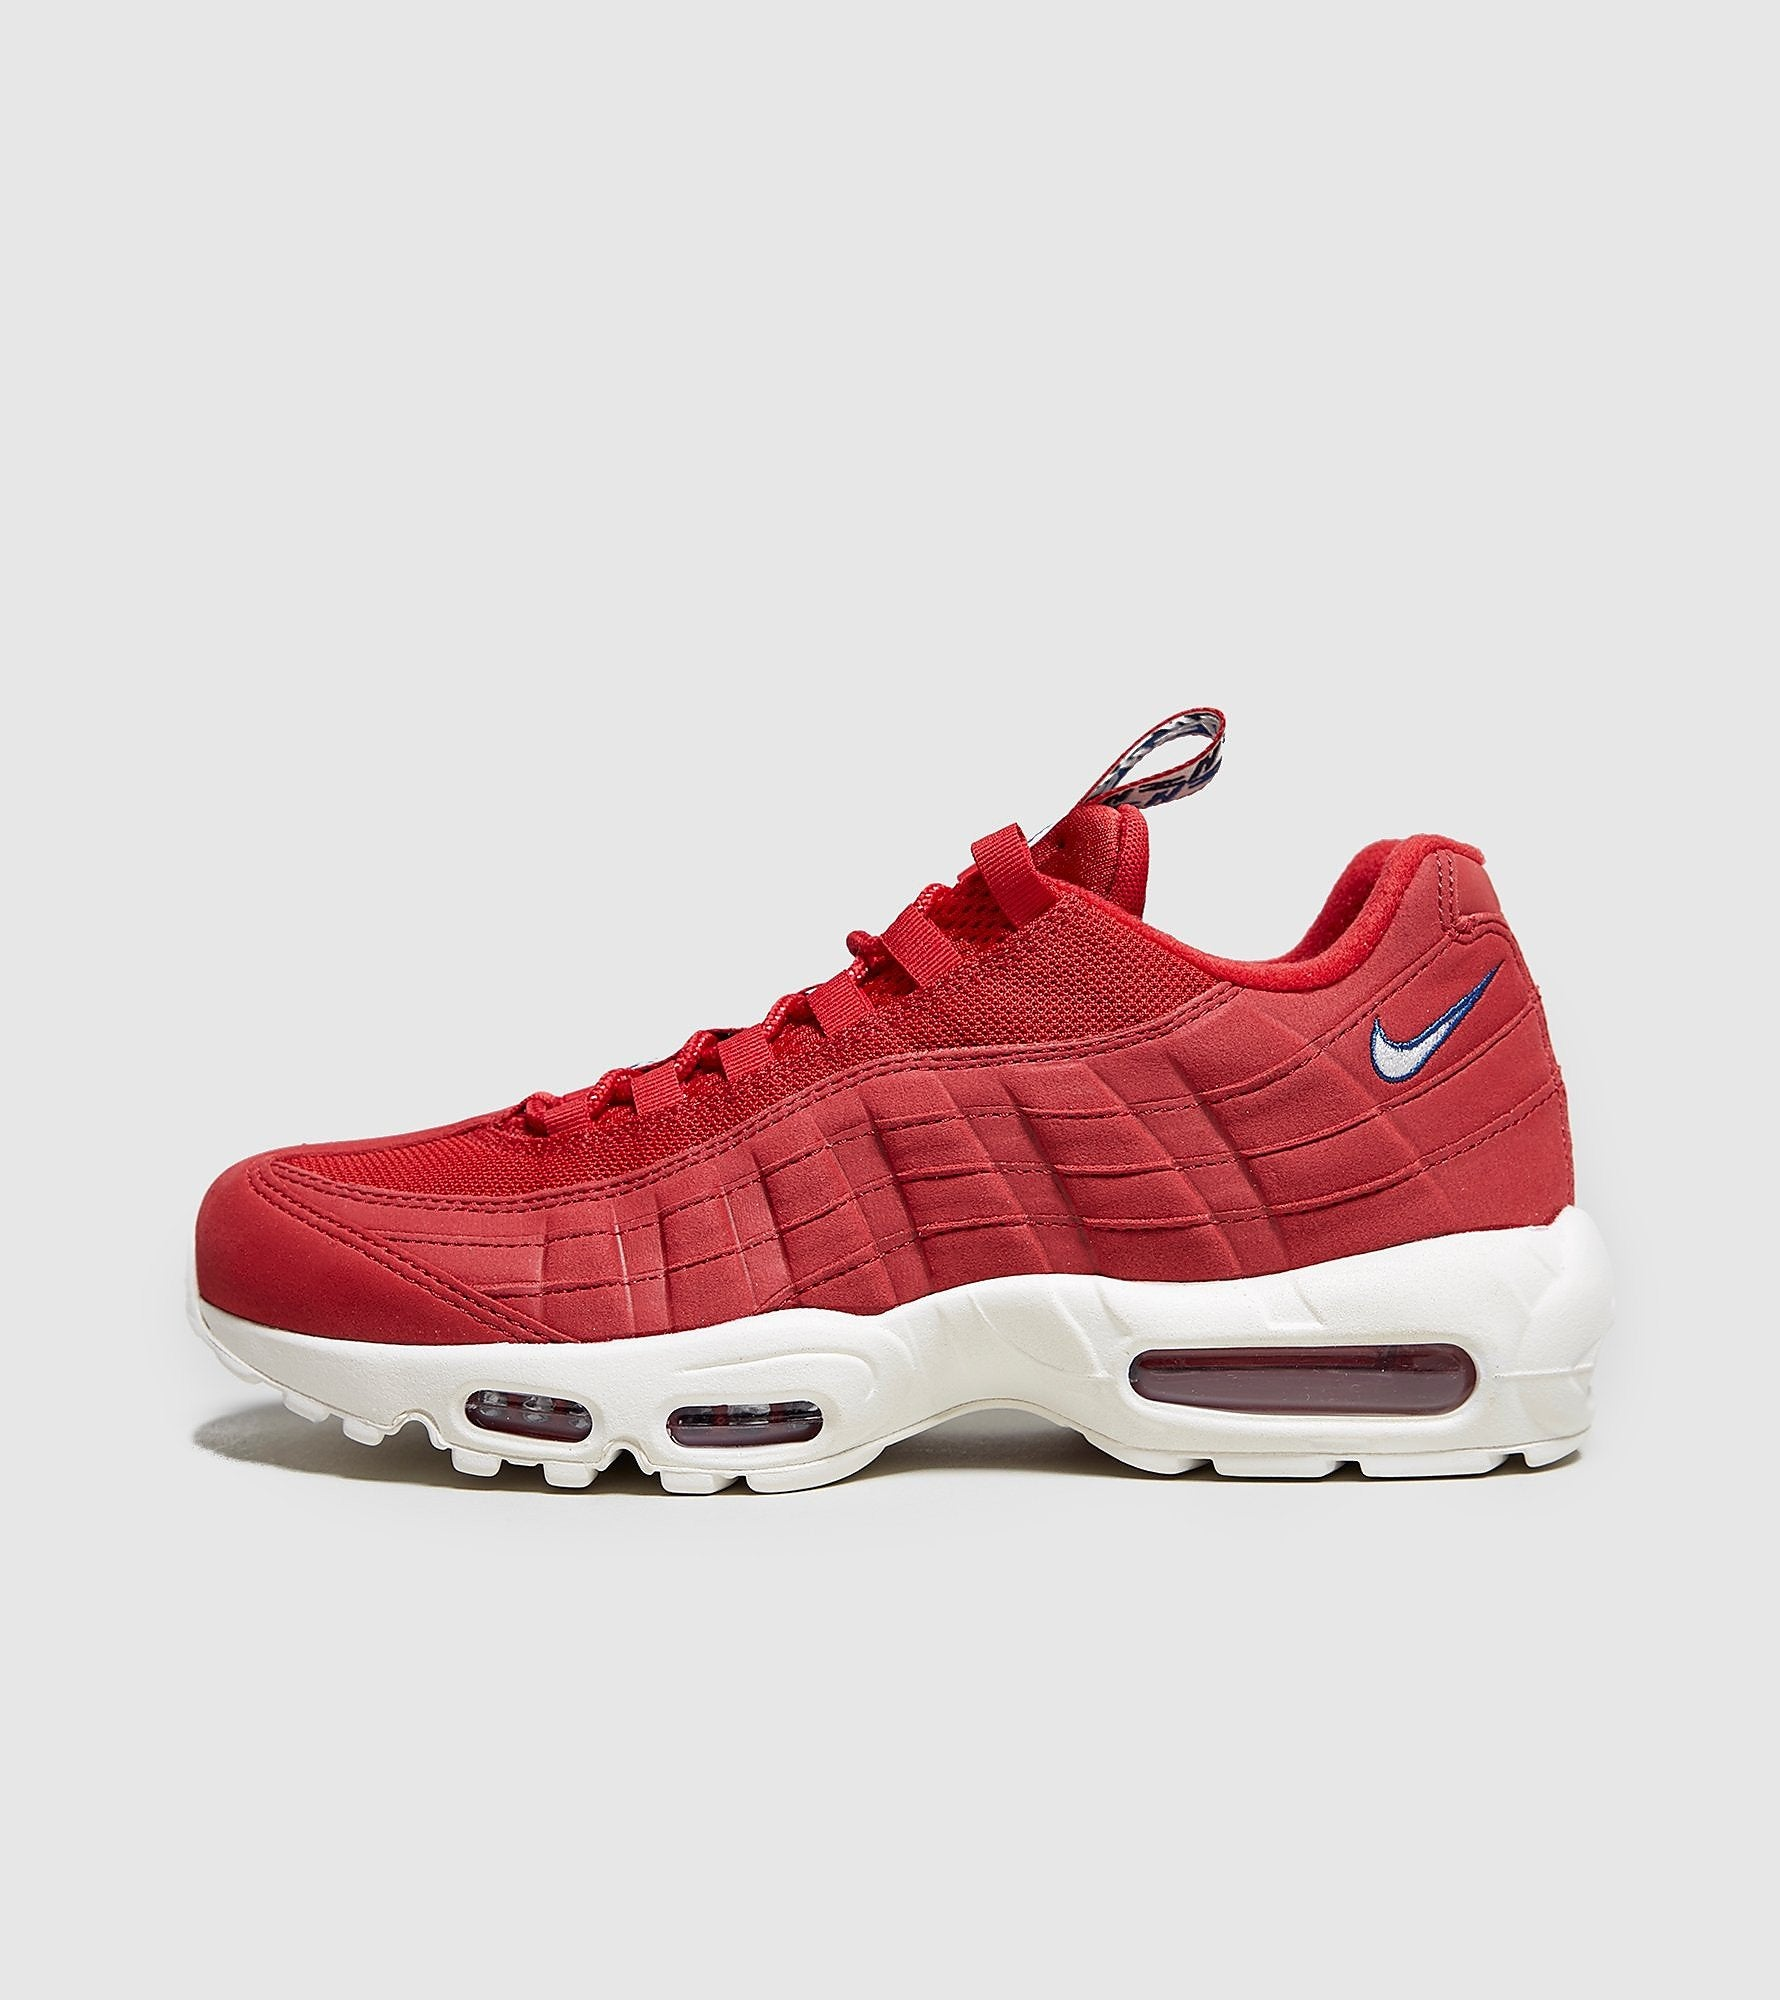 sports shoes b2a4d ecf48 Nike Nike Air Max 95  Taped , Red White at Soleheaven Curated Collections